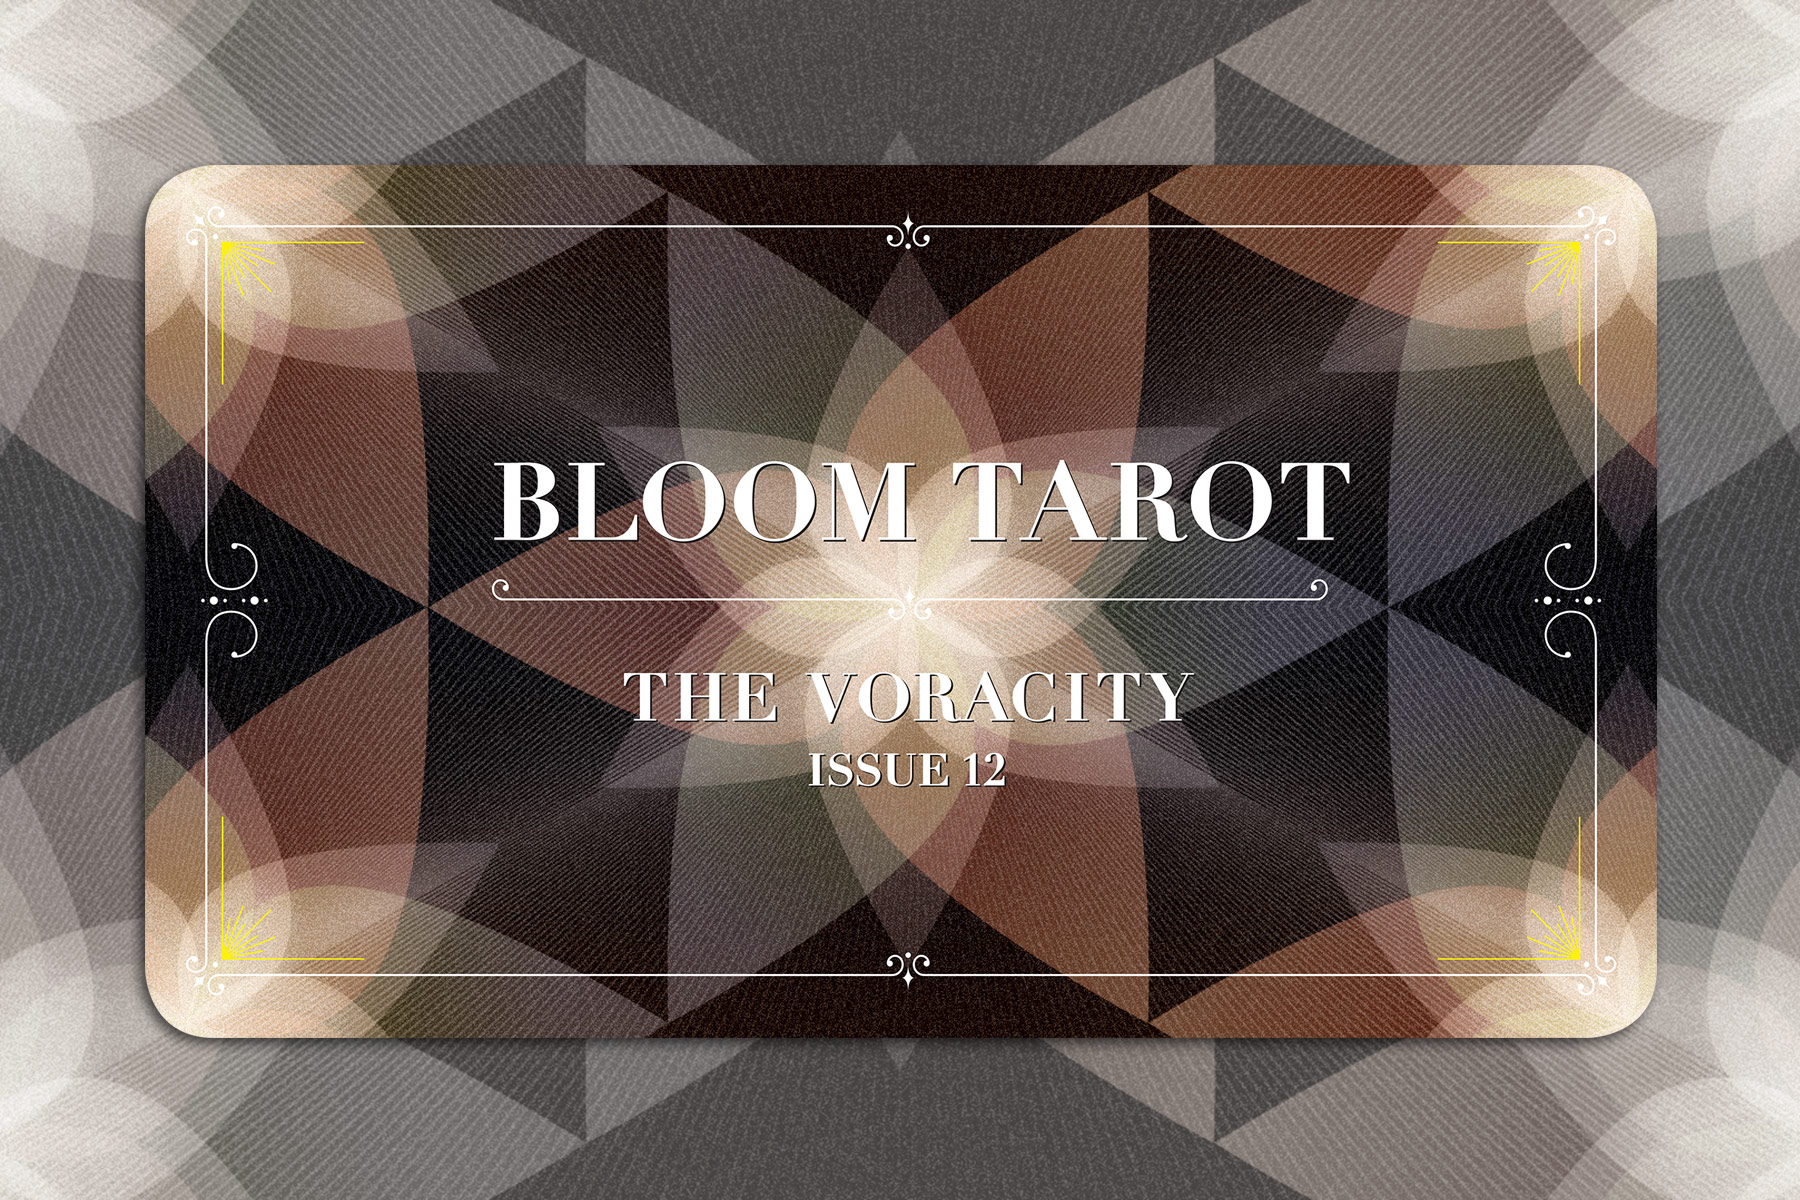 BLOOM TAROT - The Voracity by Anna Williams